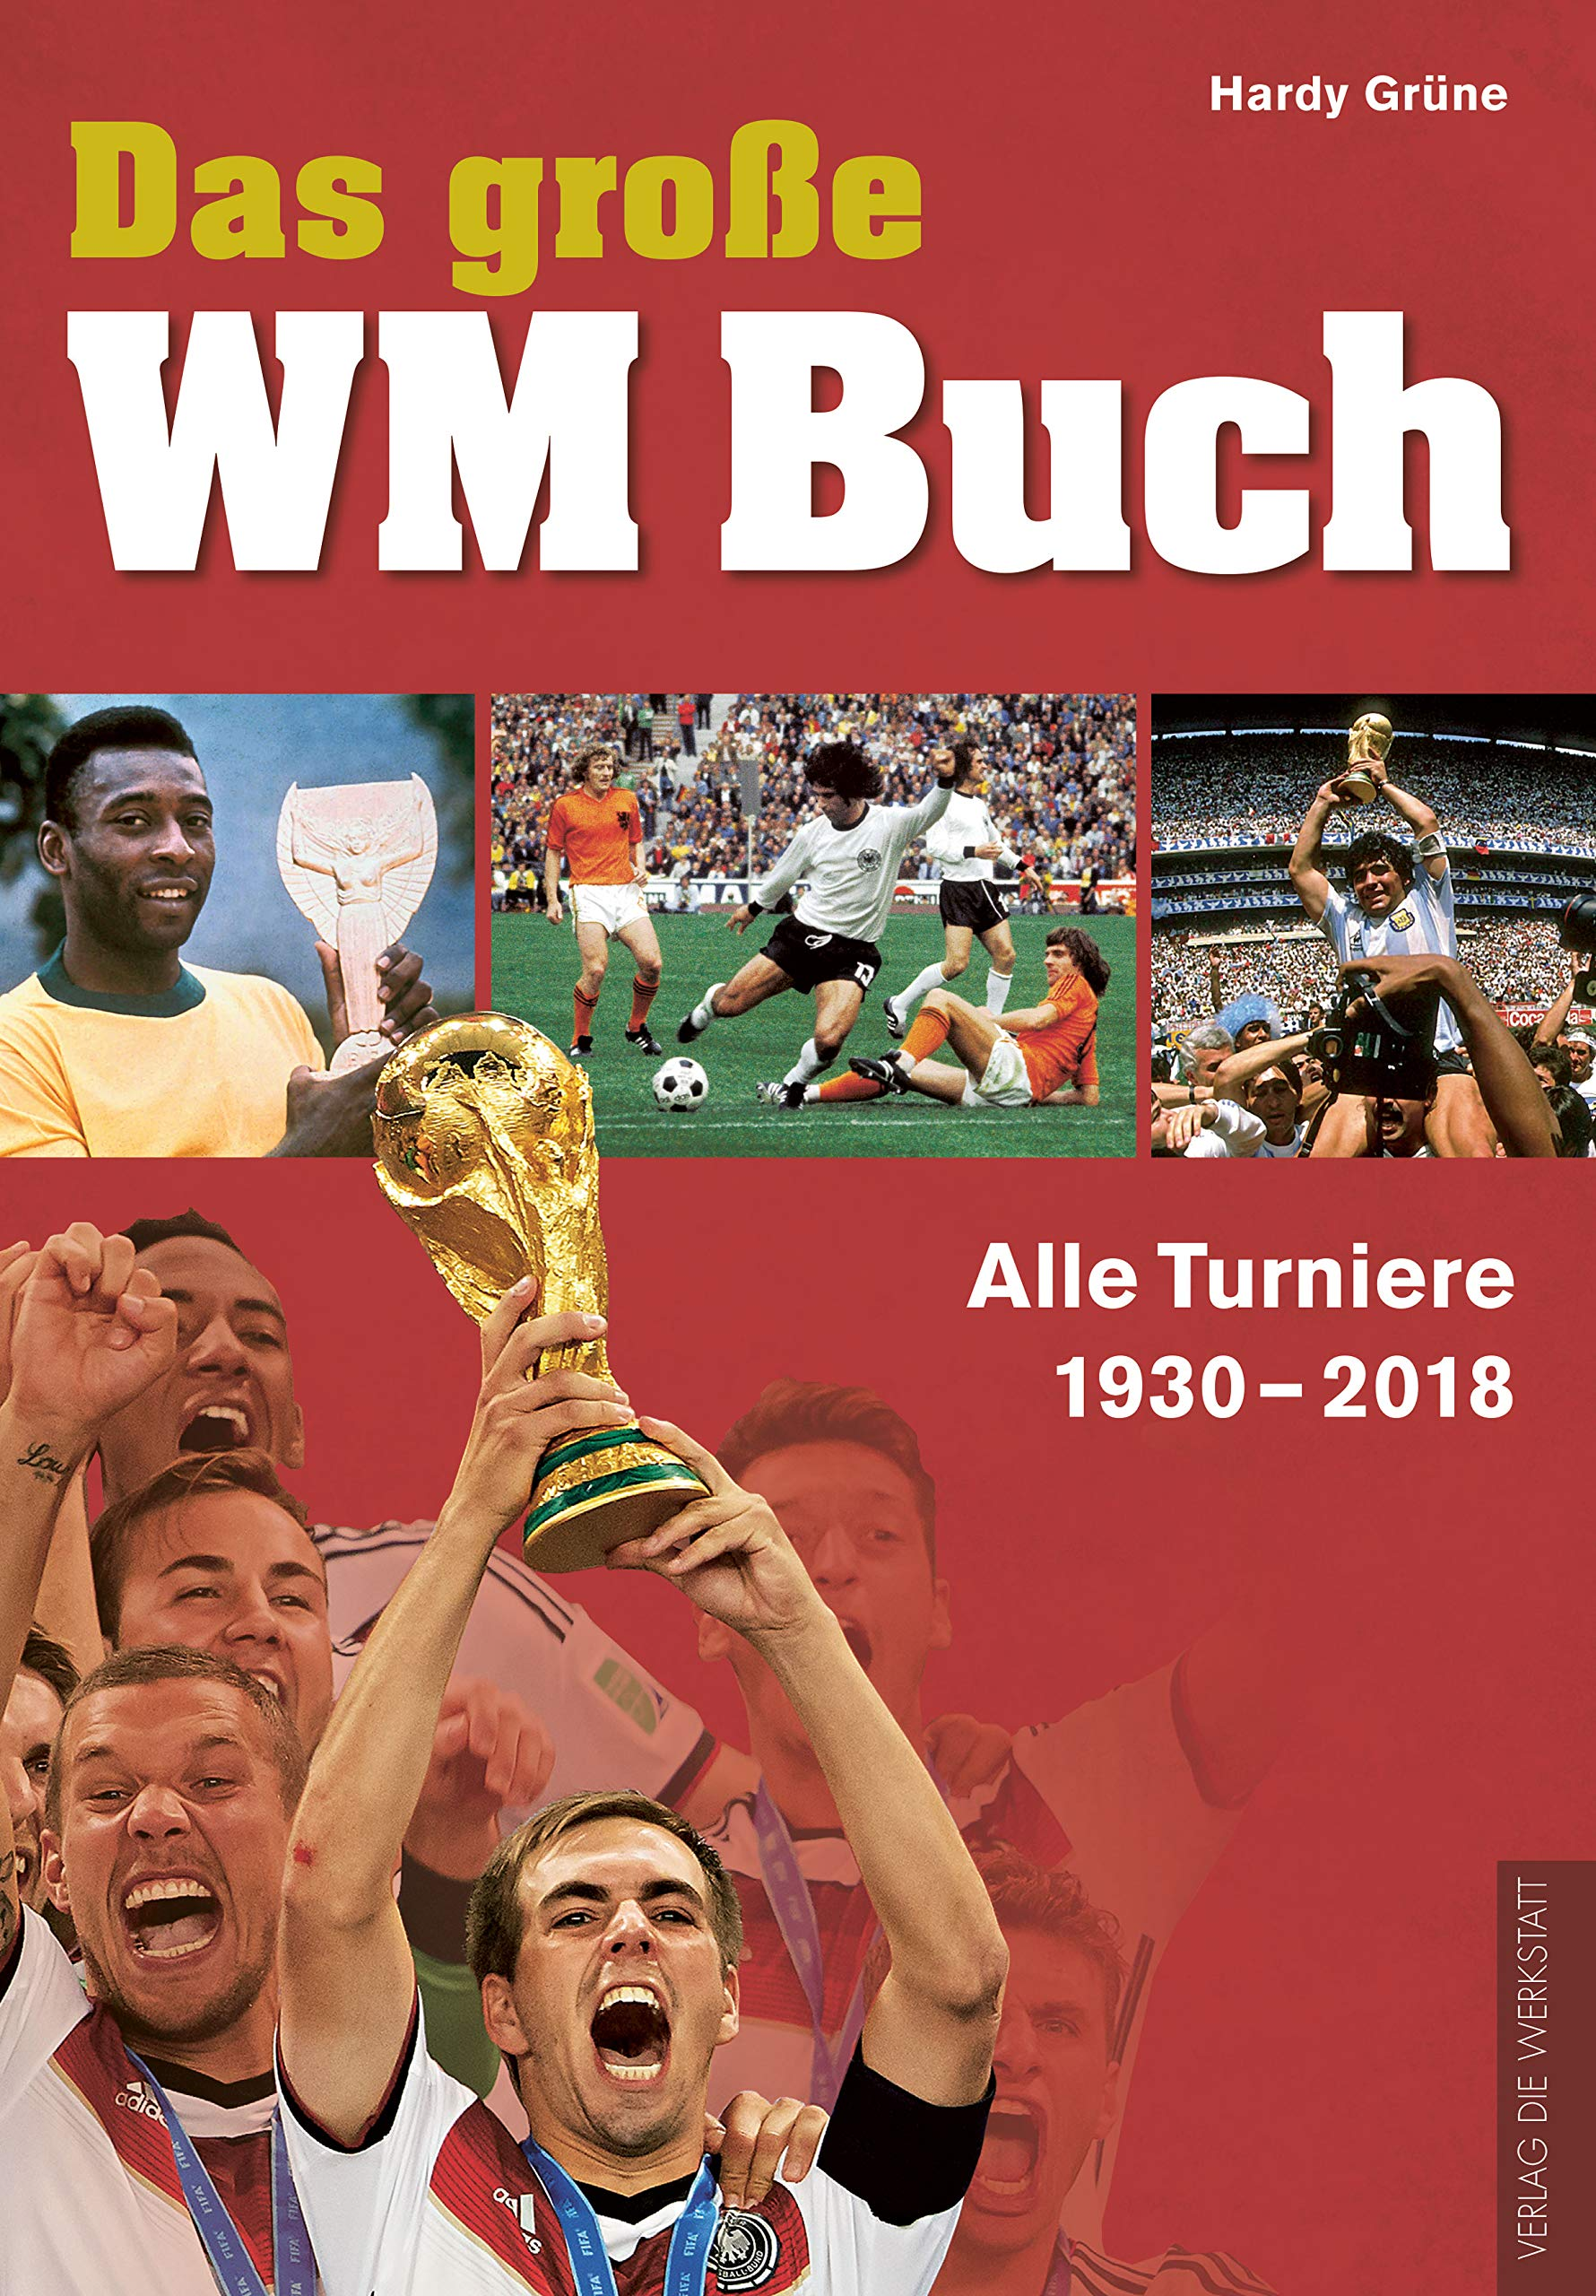 Das Grosse Wm Buch Alle Turniere 1930 2018 Amazon De Hardy